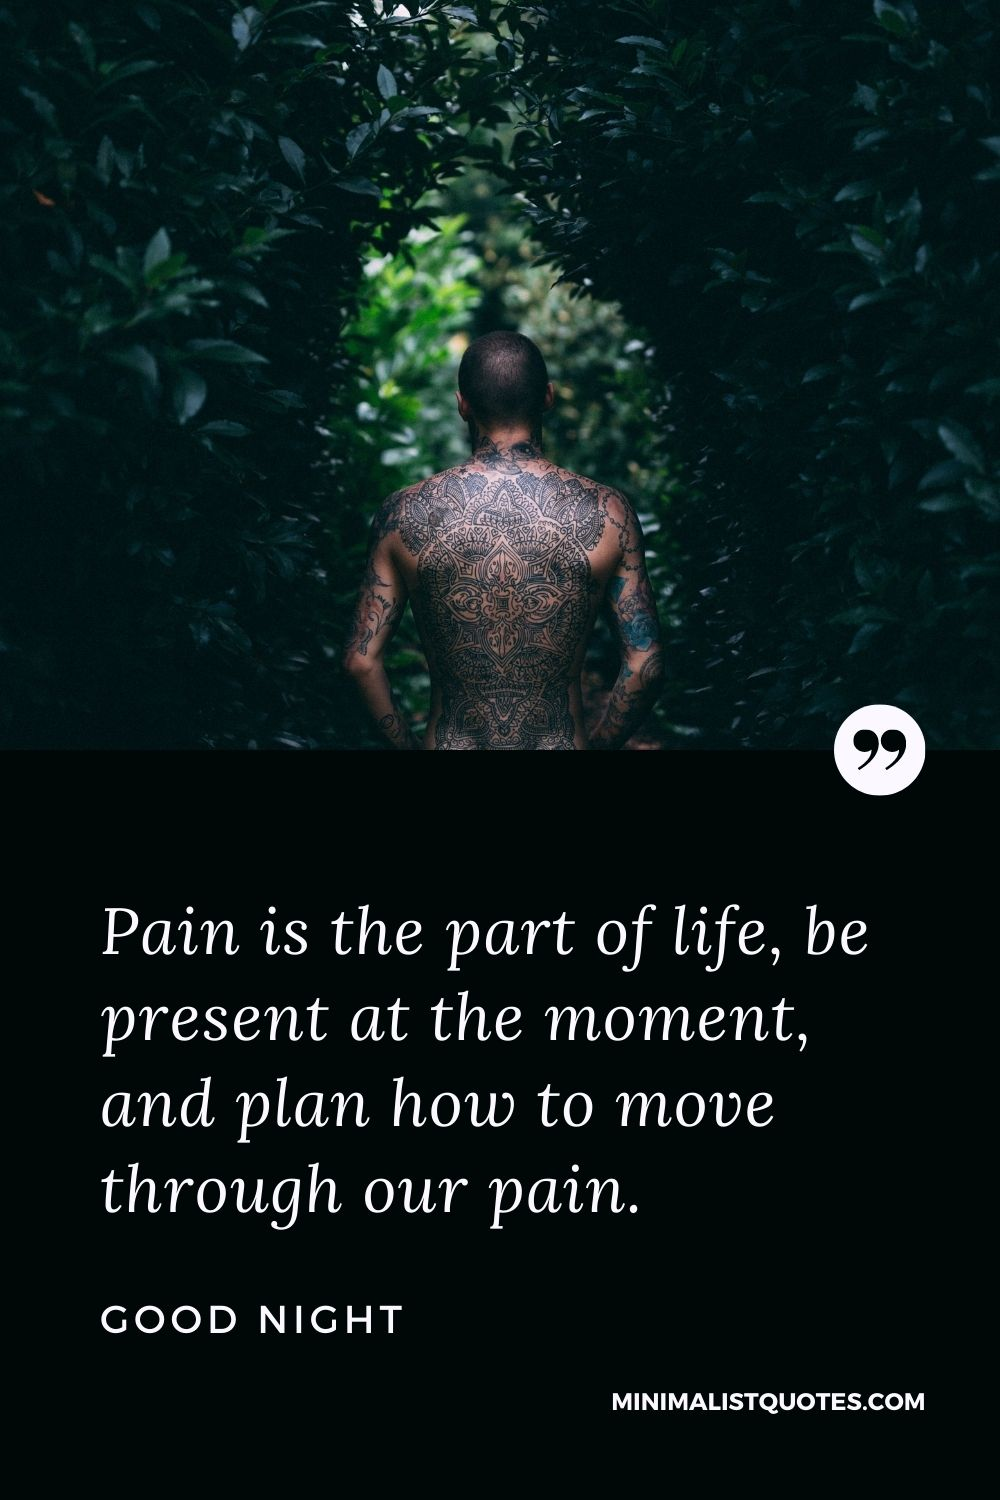 Good Night Wish & Message With Image: Pain is the part of life, be present at the moment, and plan how to move through our pain.